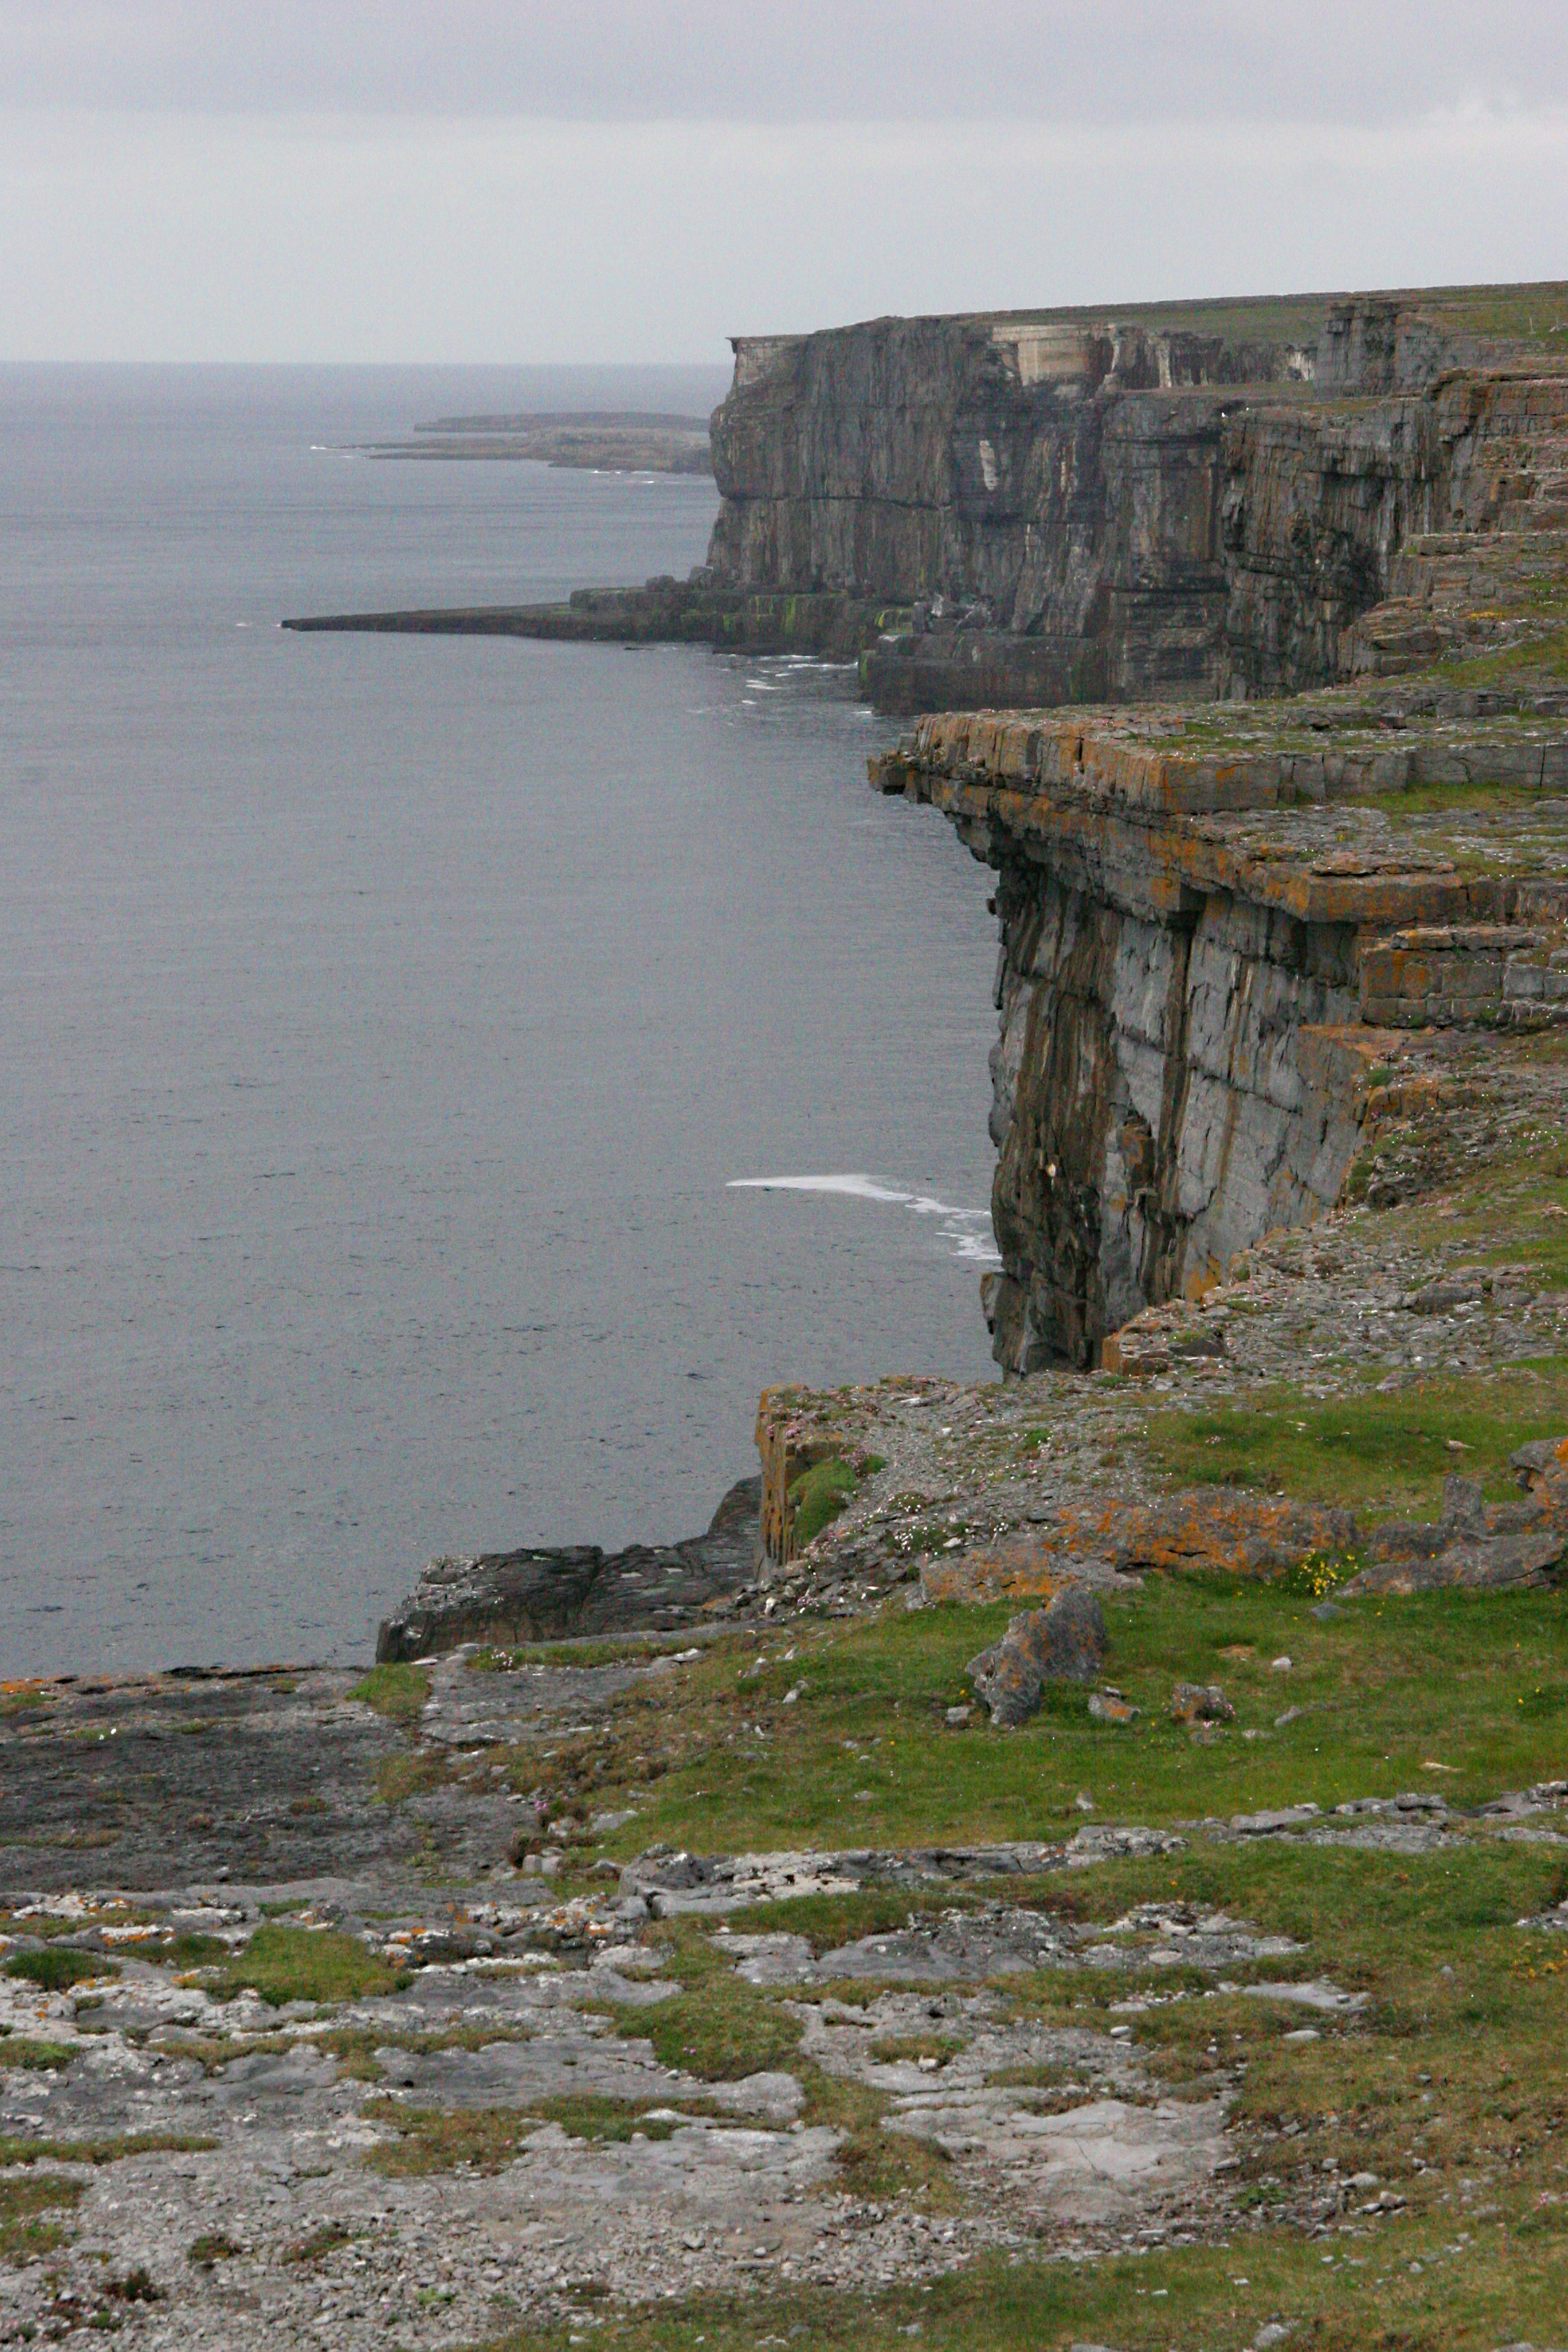 Cliff at celtic stone fort, Aran Islands Ireland 3.jpg